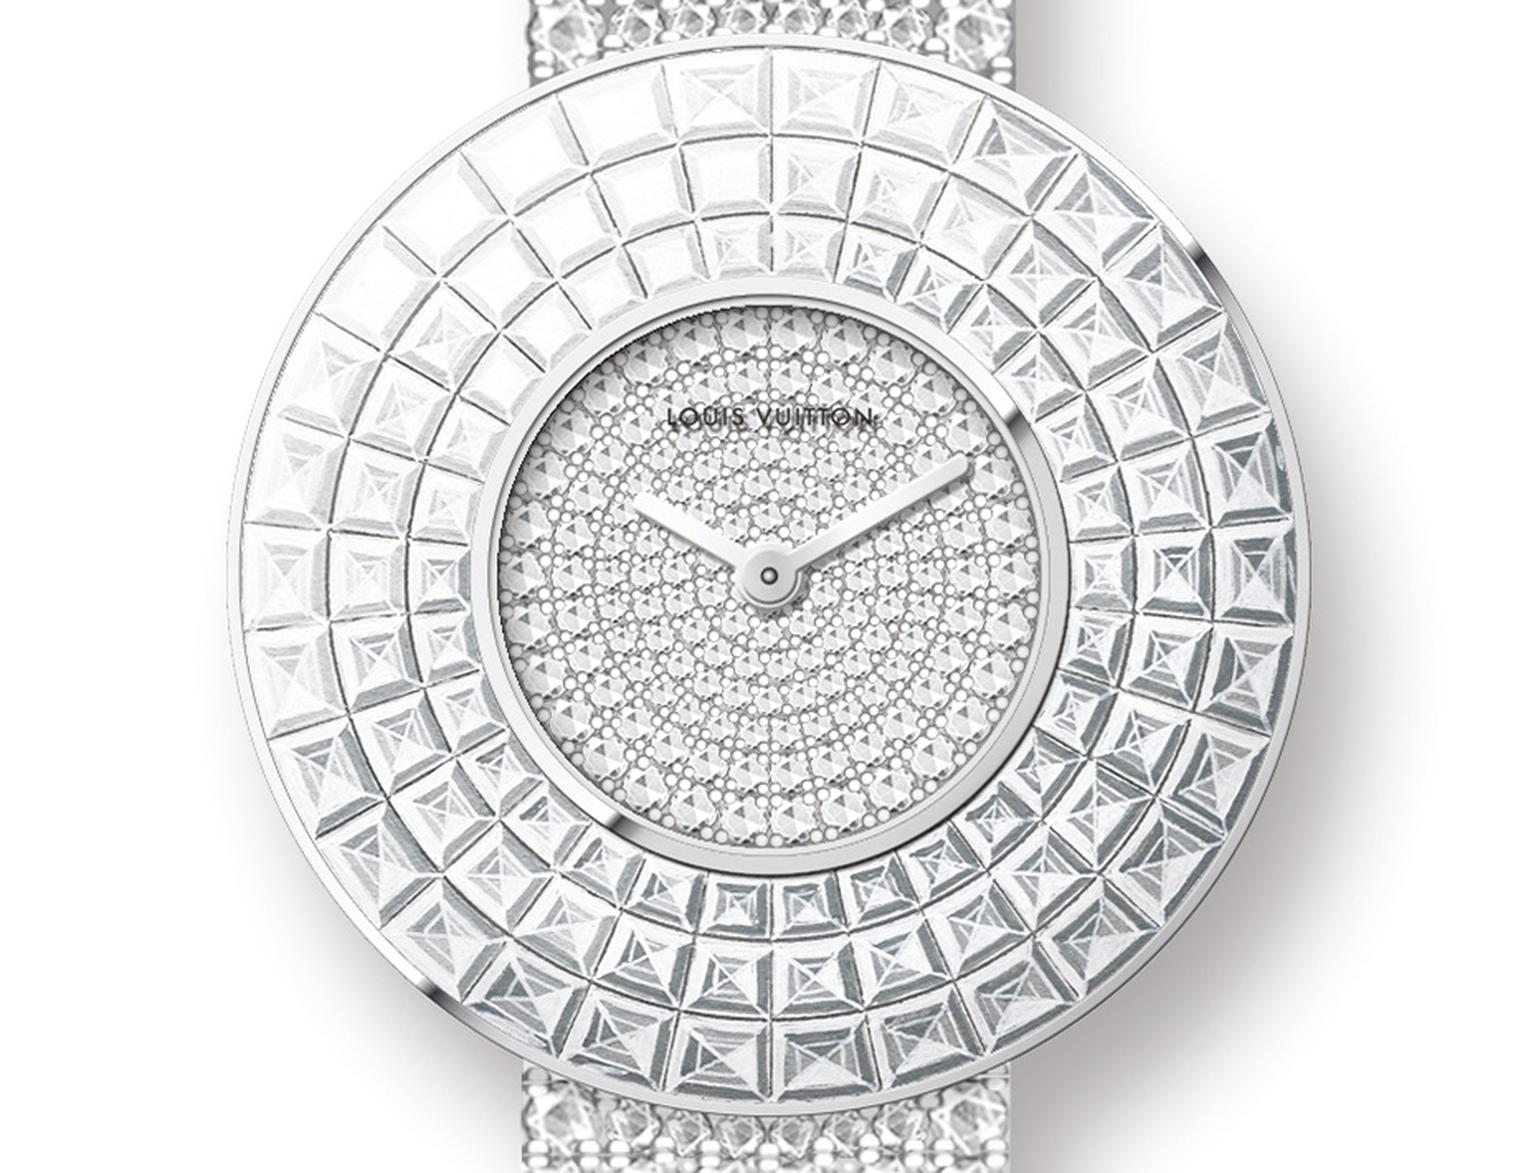 Louis Vuitton's white gold Damier Absolu Rivière watch features brilliant-cut diamonds on the dial and bracelet and is invisible set with three rows of baguette-cut diamonds on the bezel.